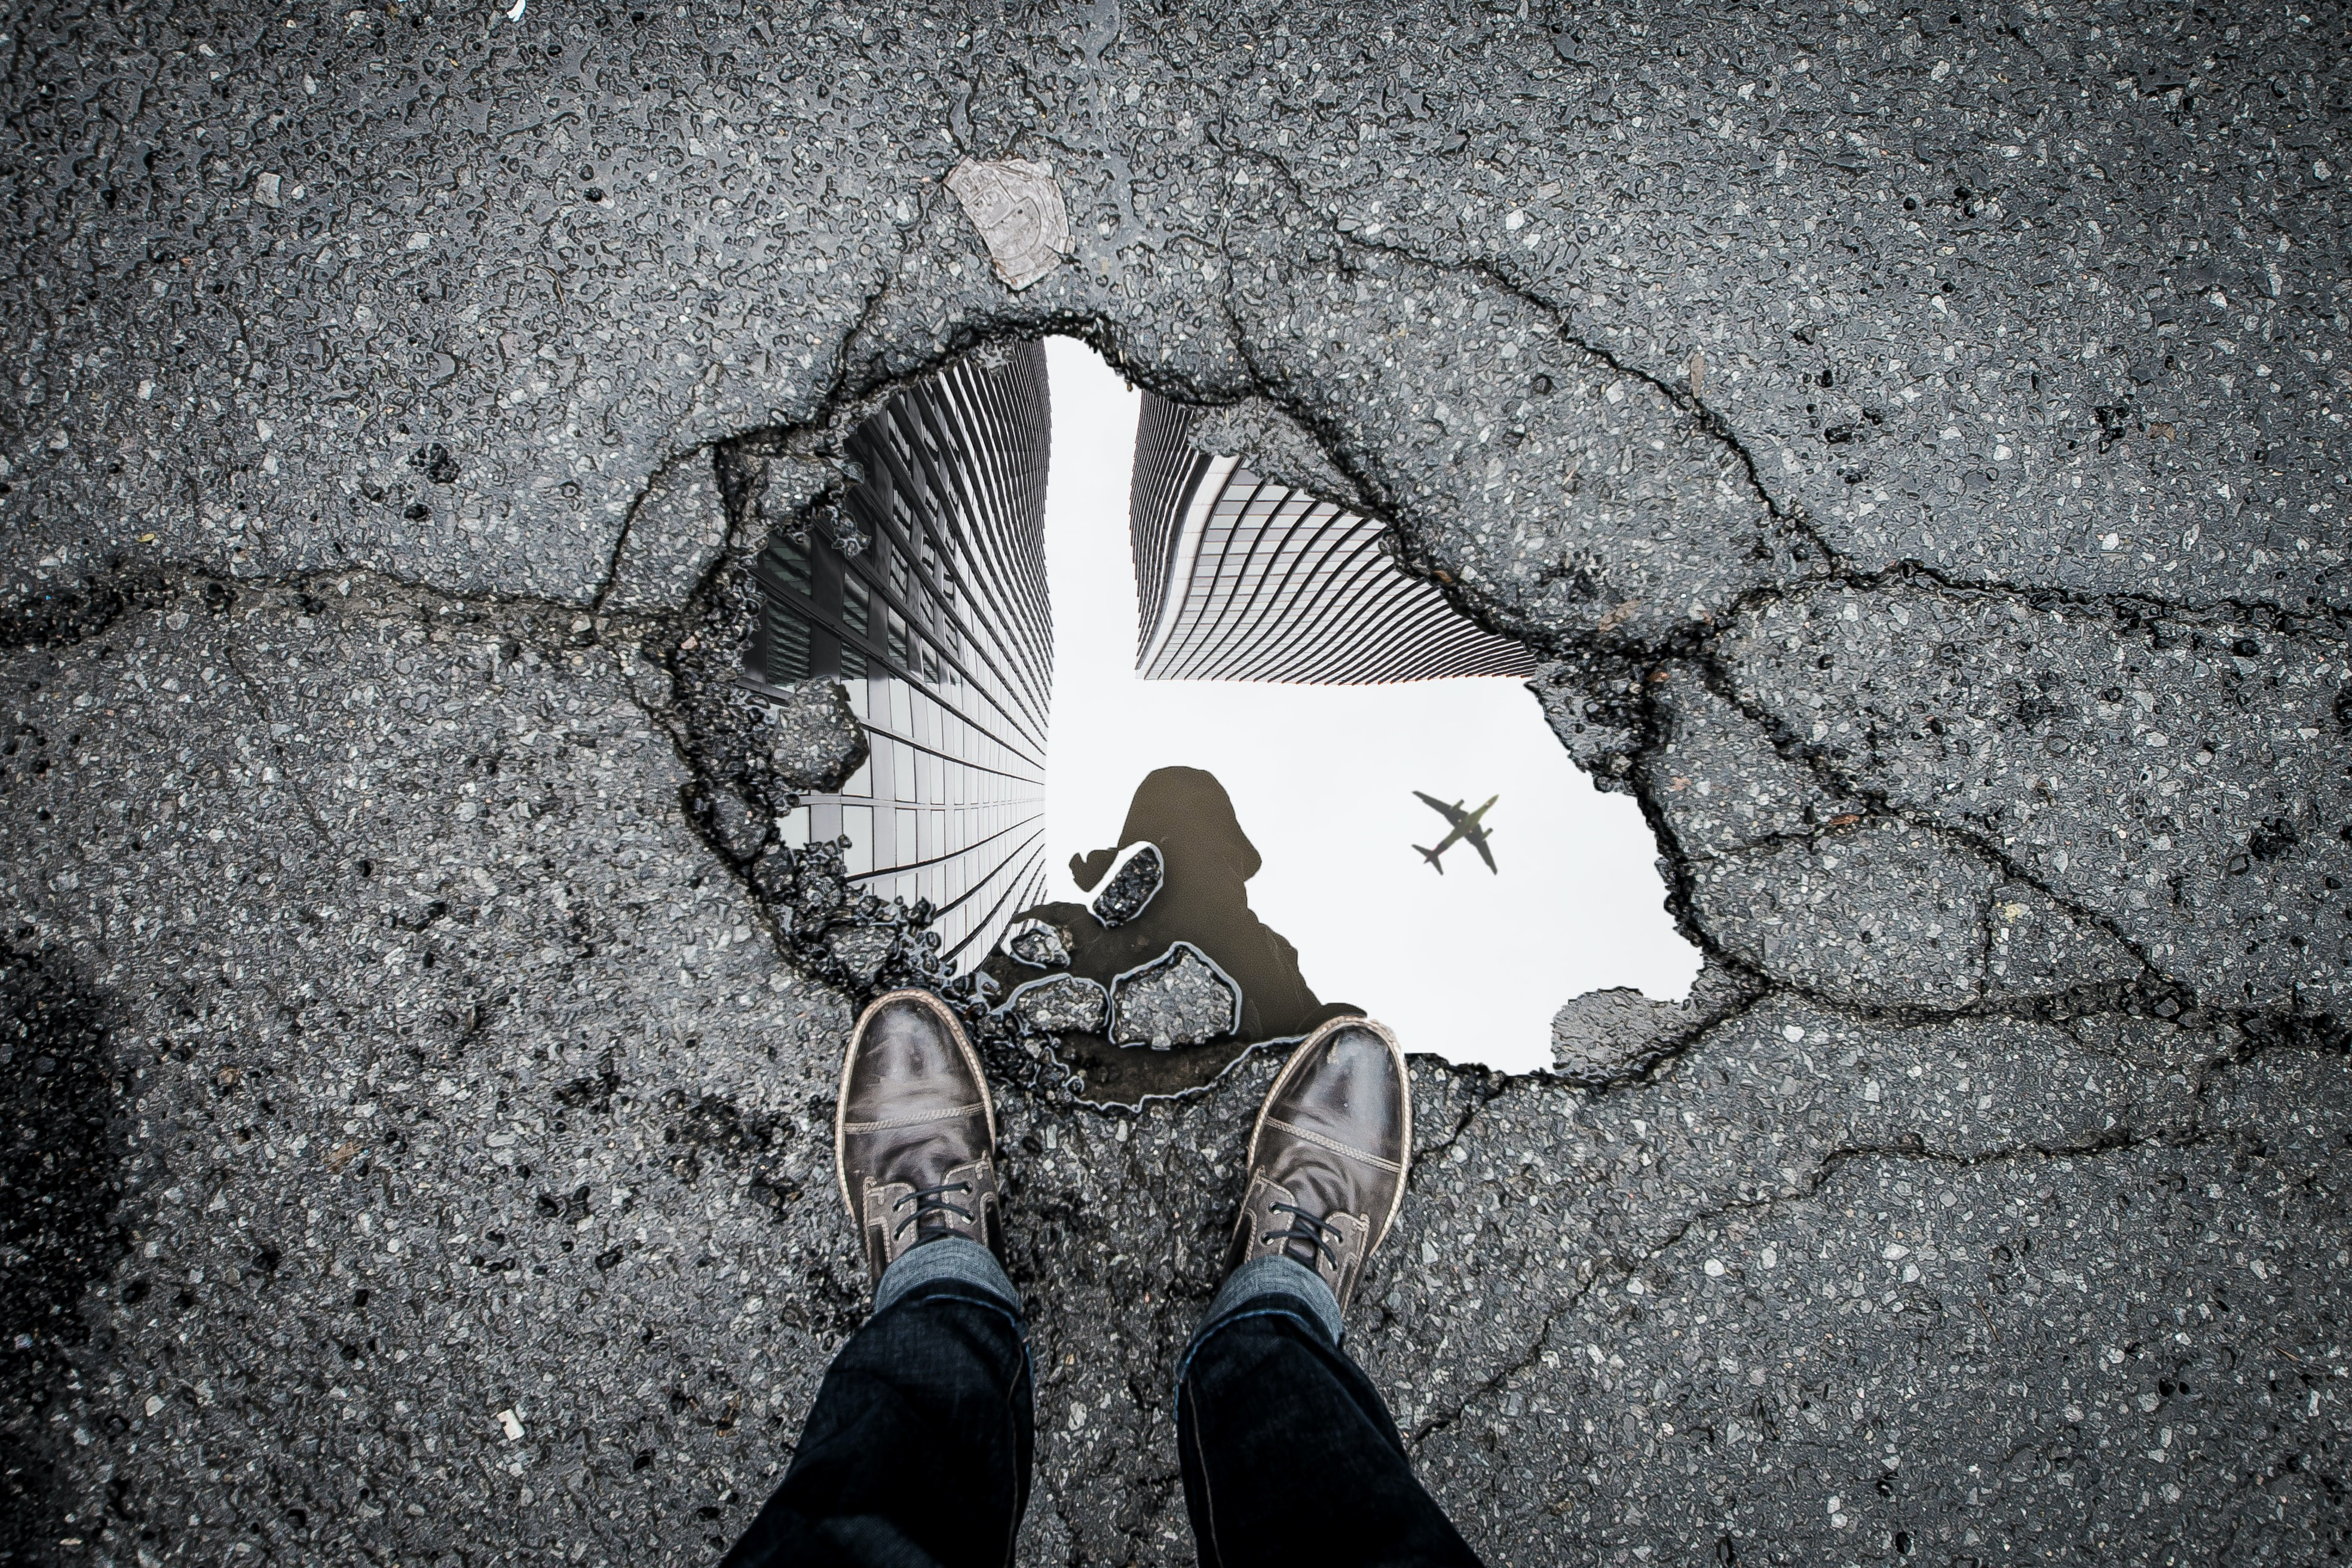 person looking down into reflection and reflecting